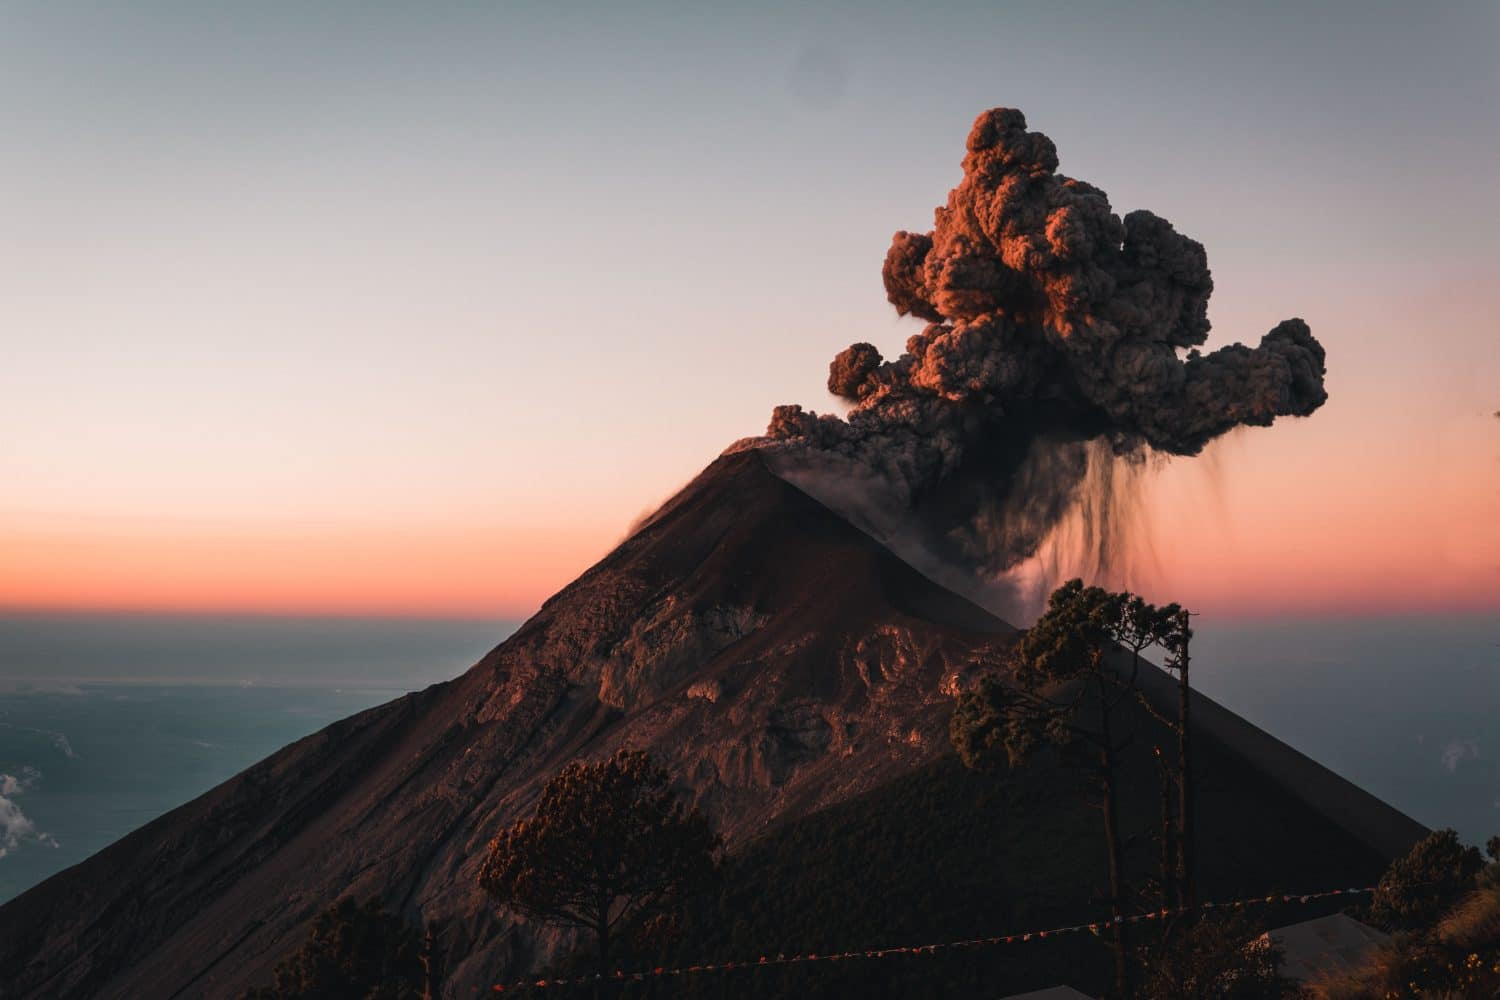 Volcan Fuego Erupting at Sunrise